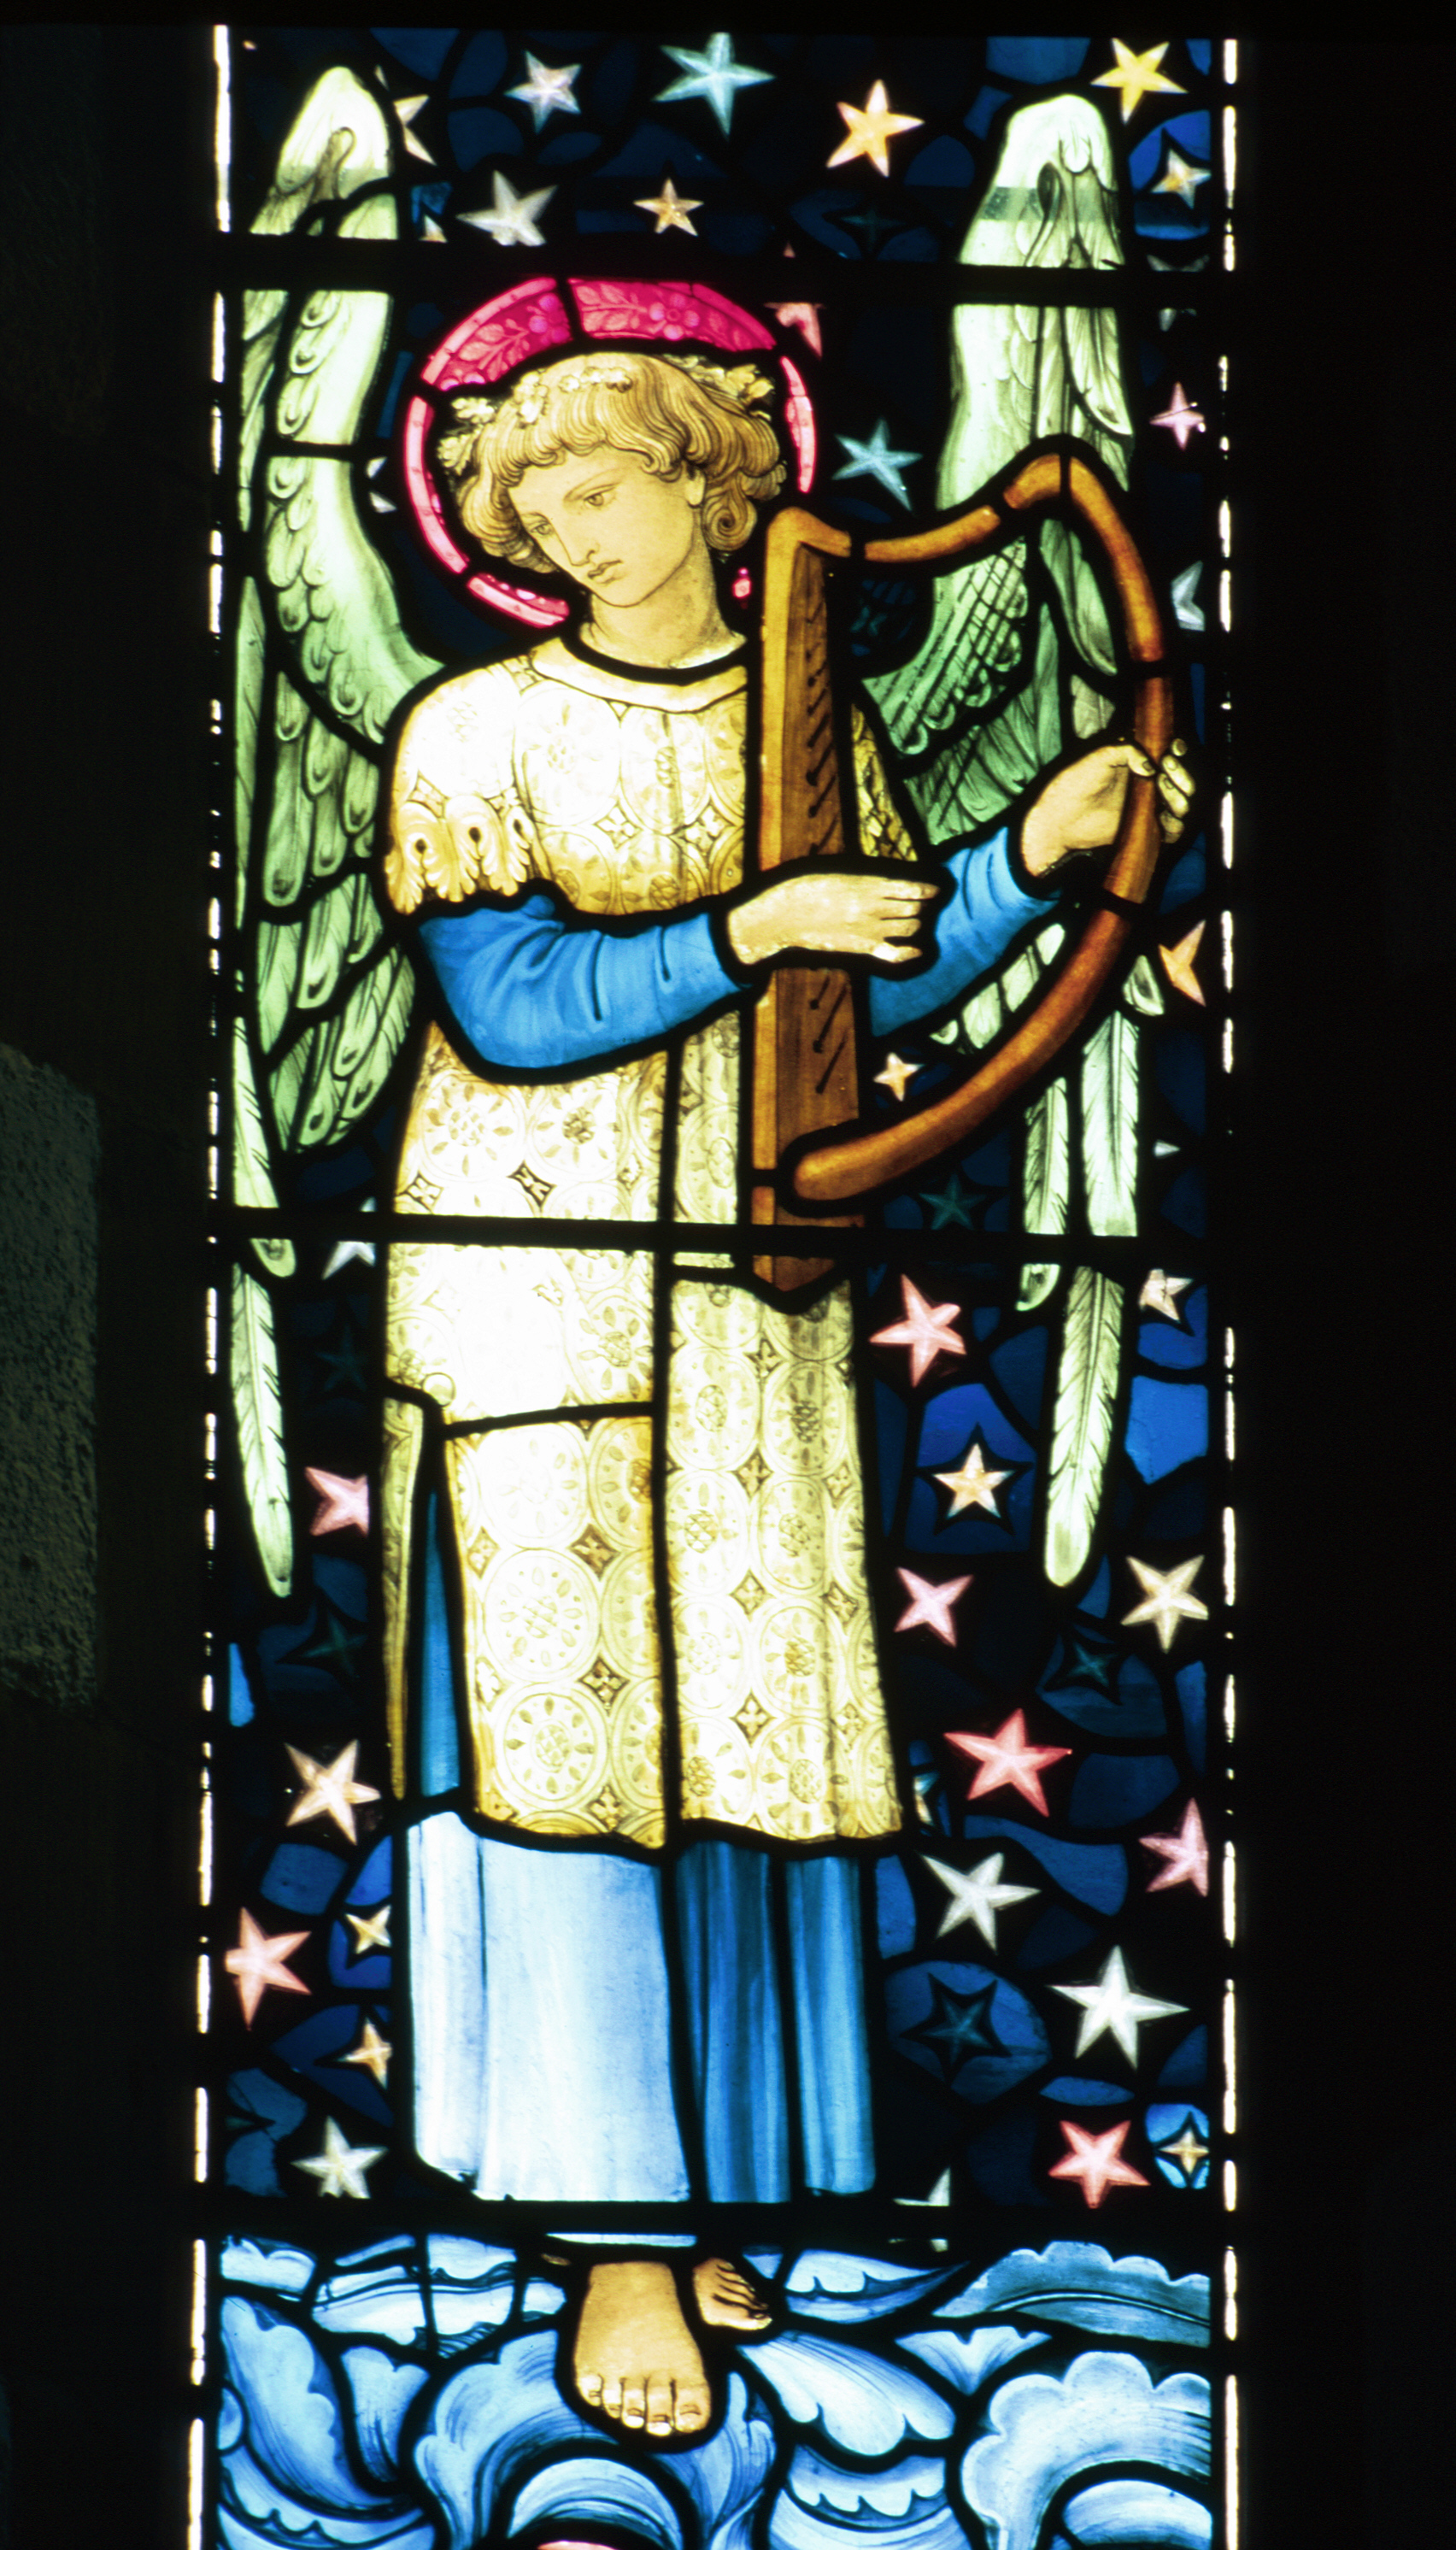 Musical Angel in stained glass by William Morris